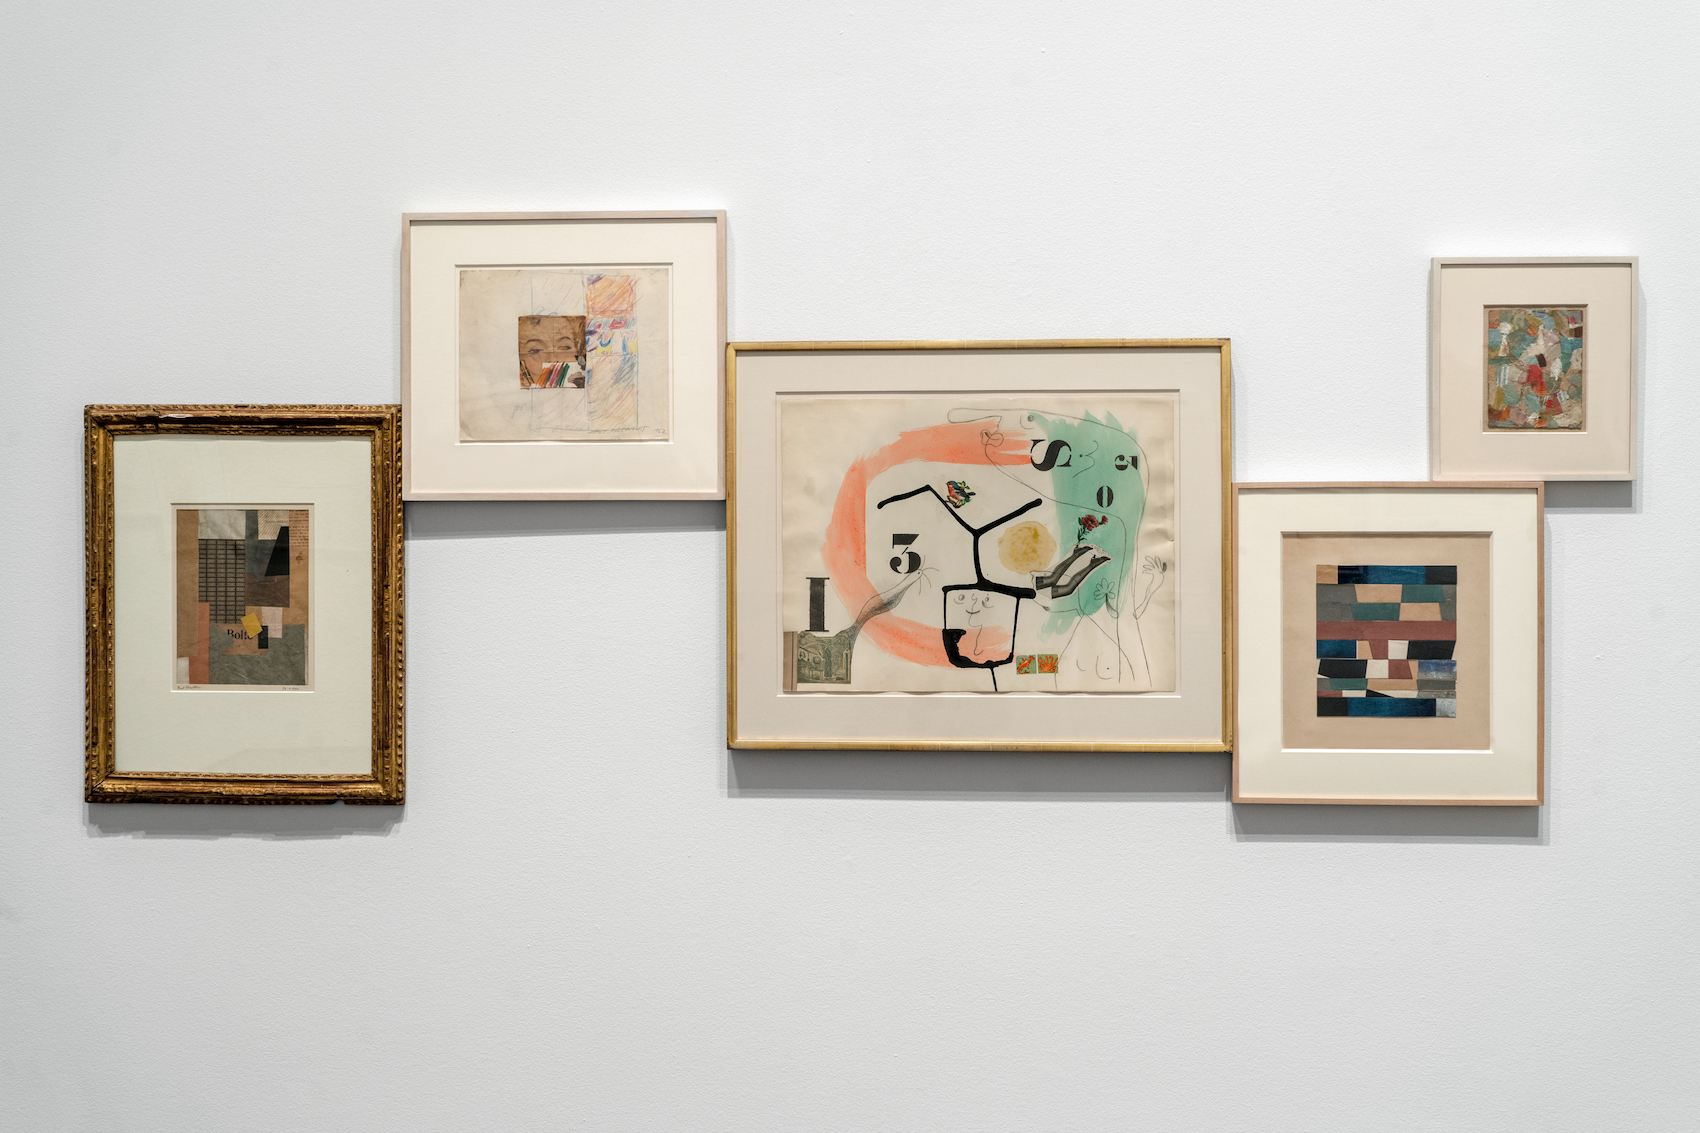 Five framed artworks displayed on a wall.